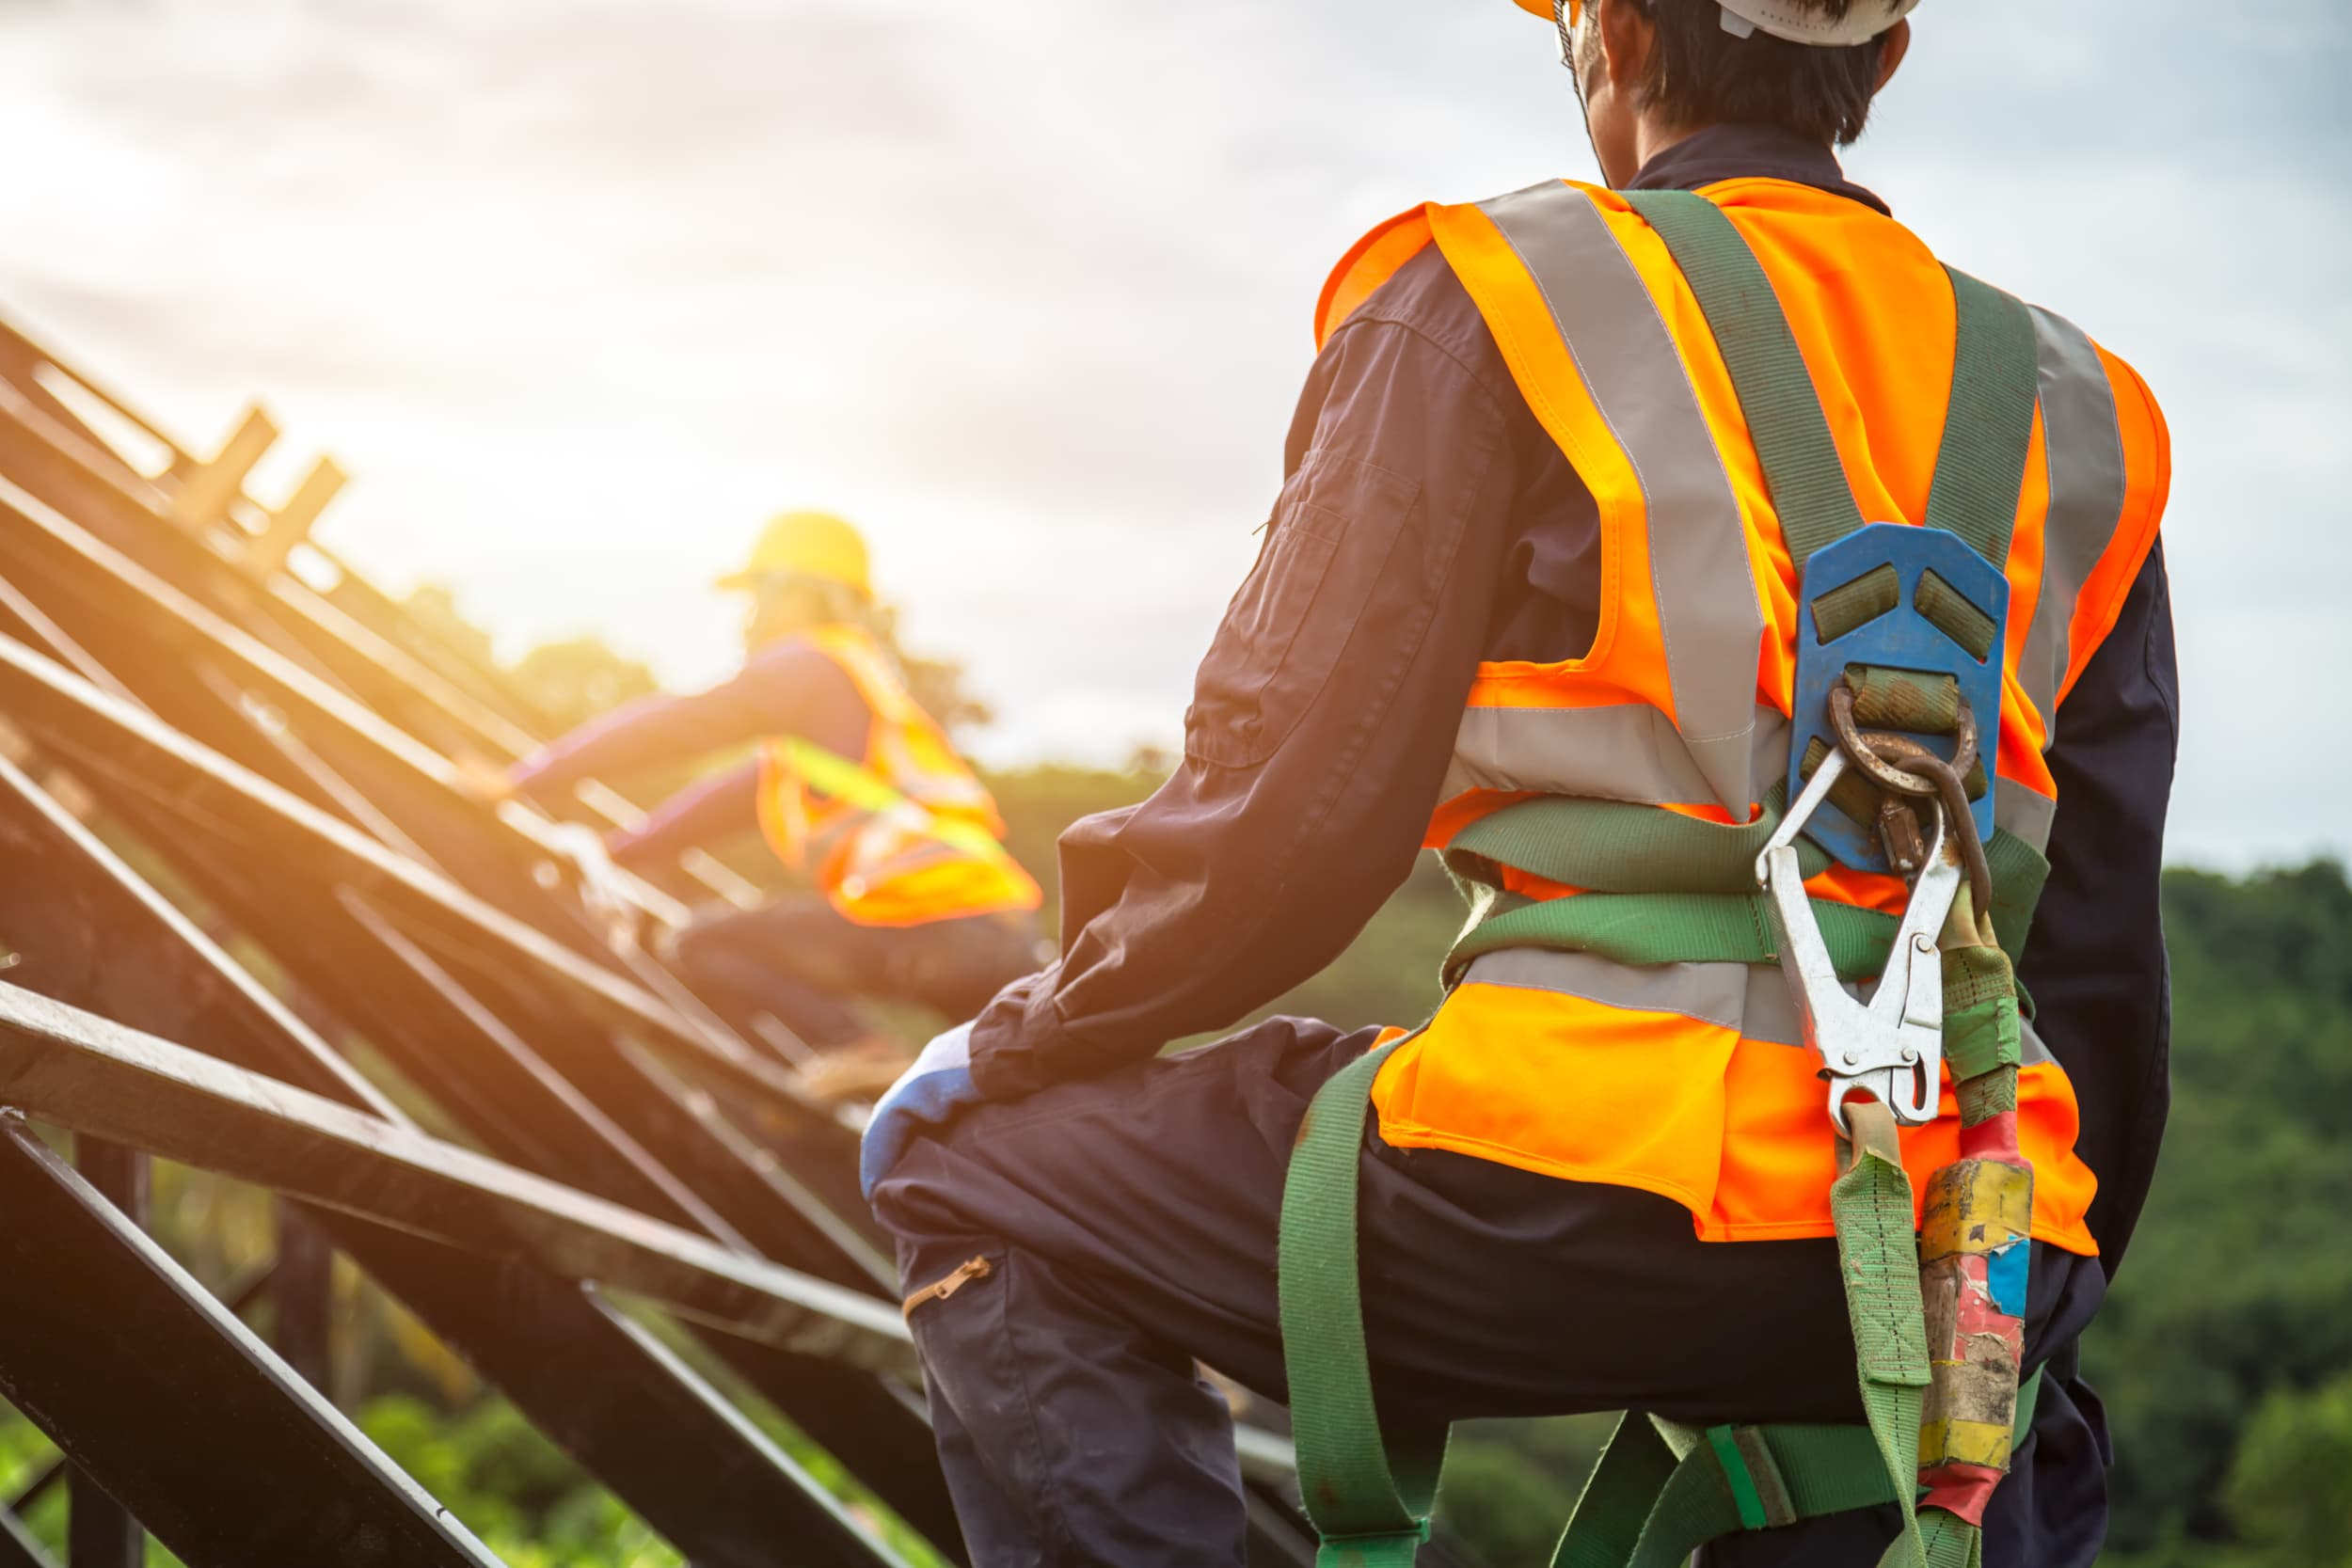 Compliance Training Online Construction Fall Protection course